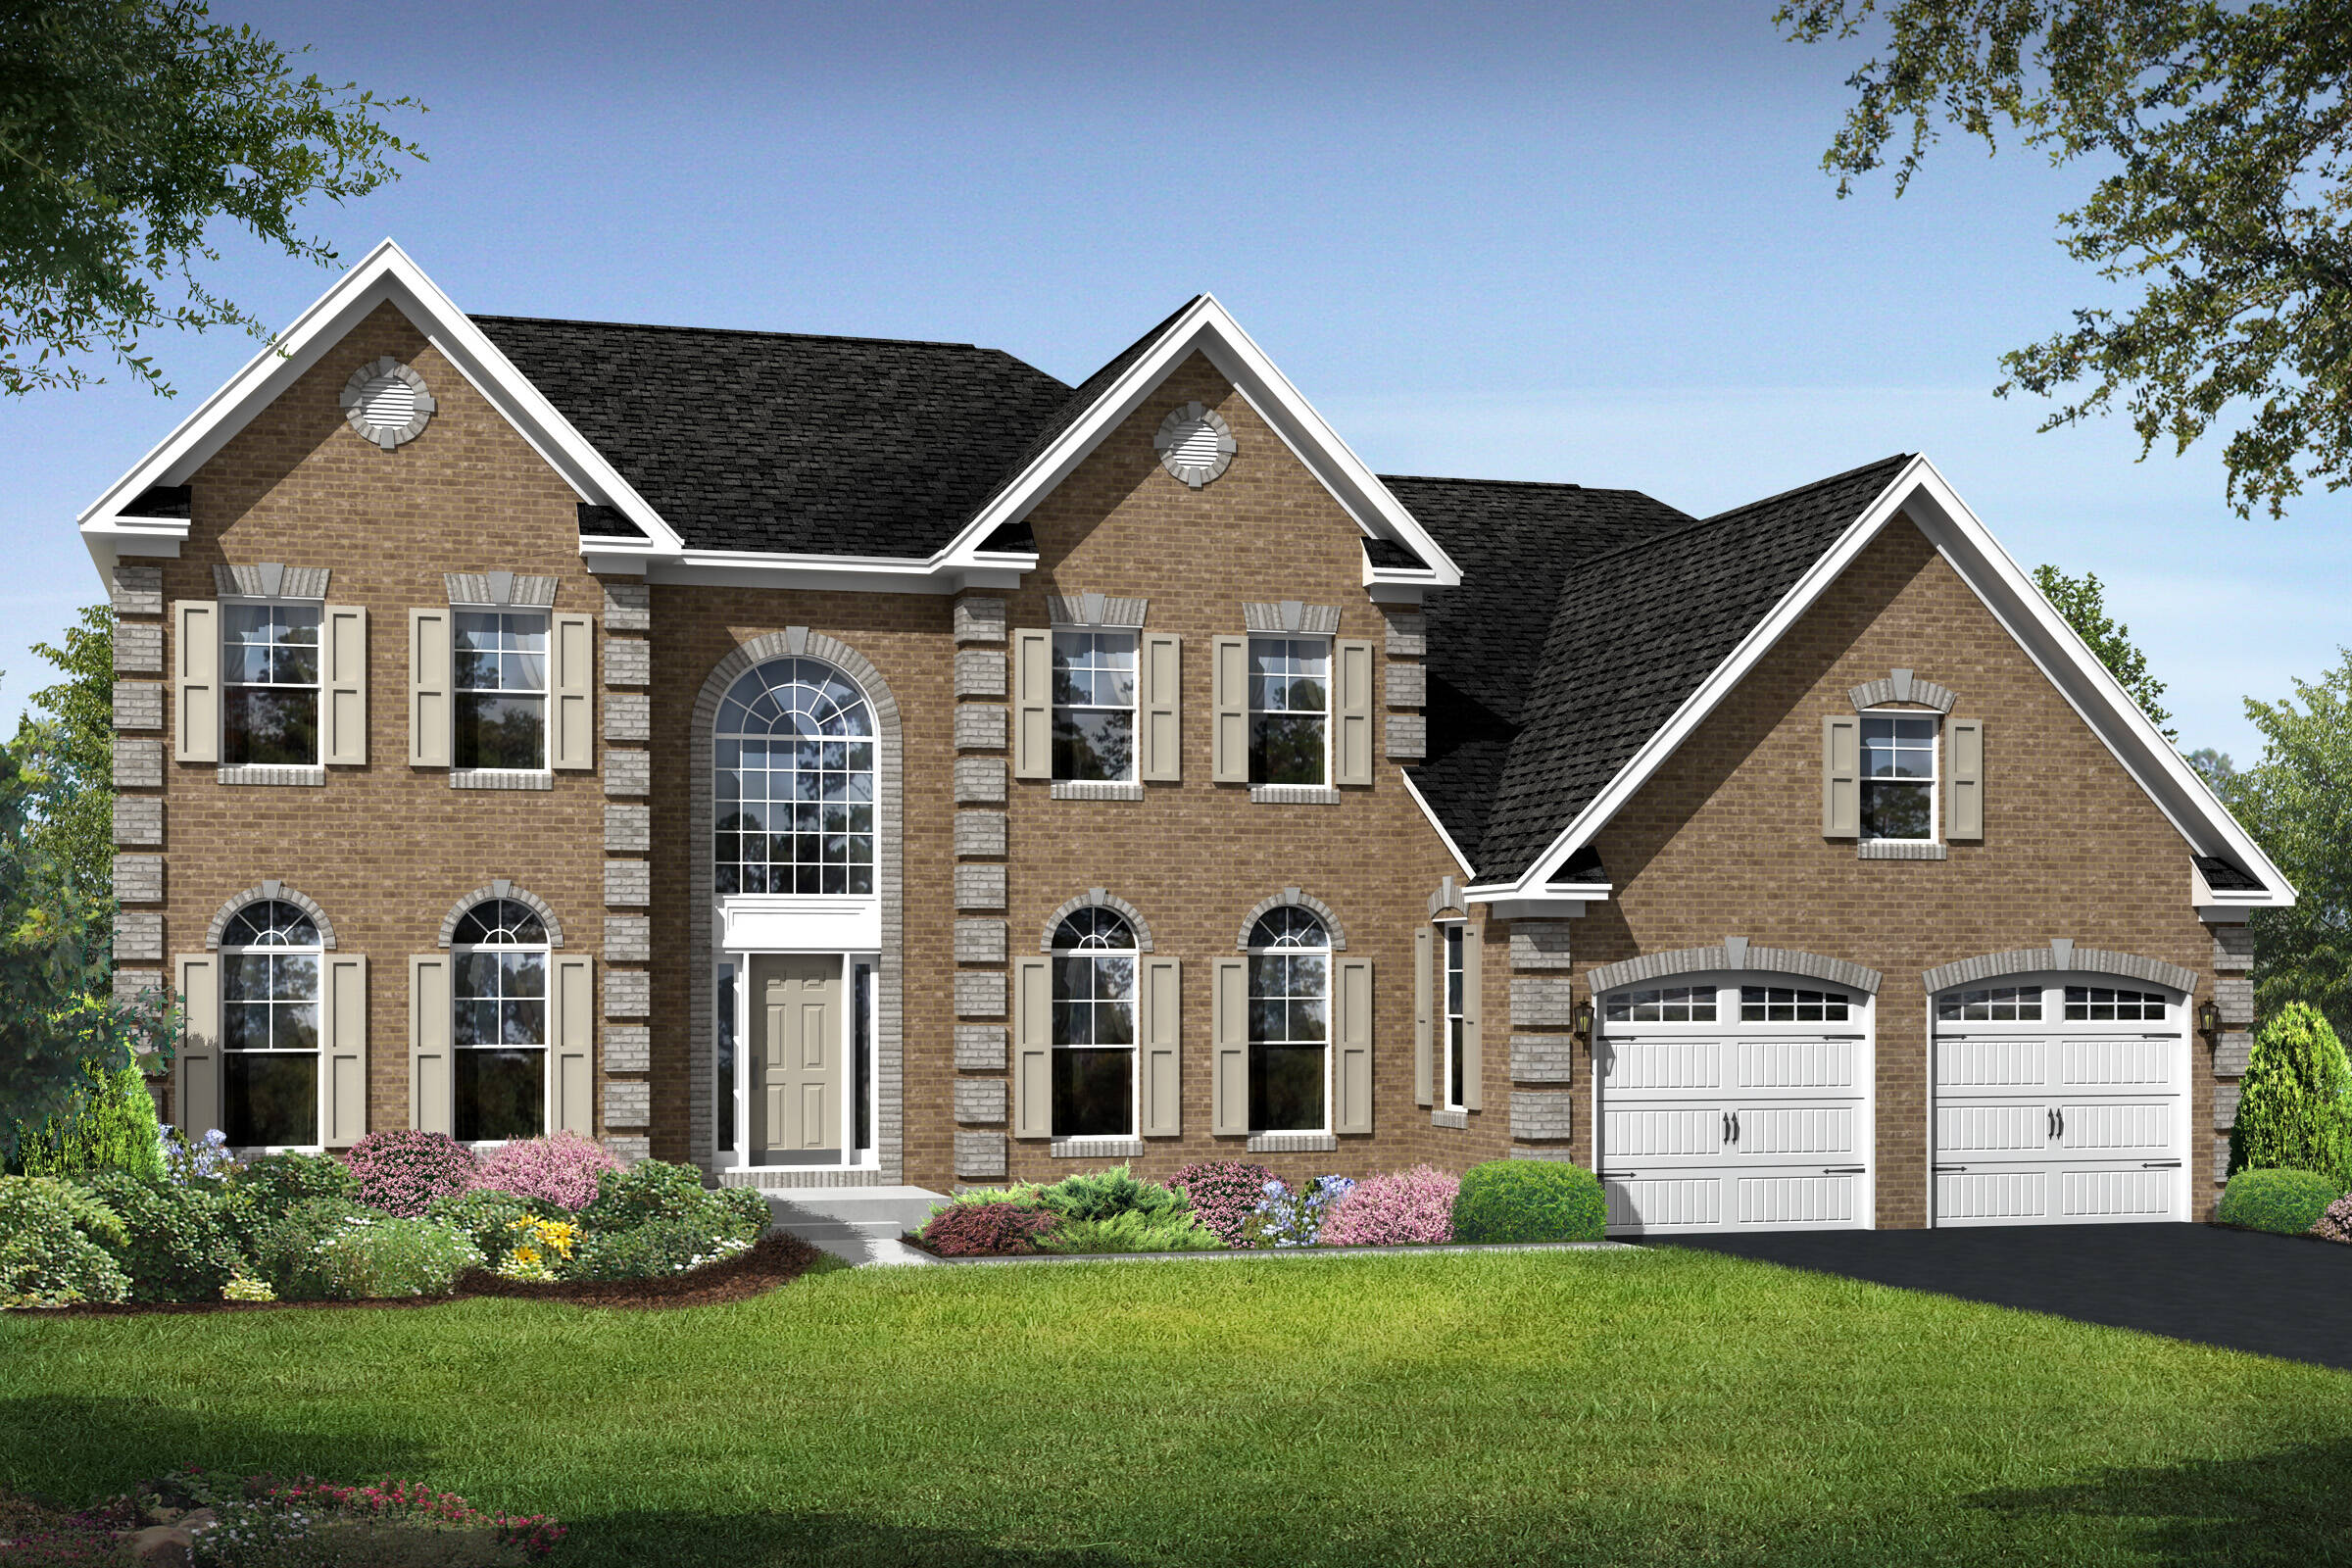 rhode island federal new homes at magness farm in virginia